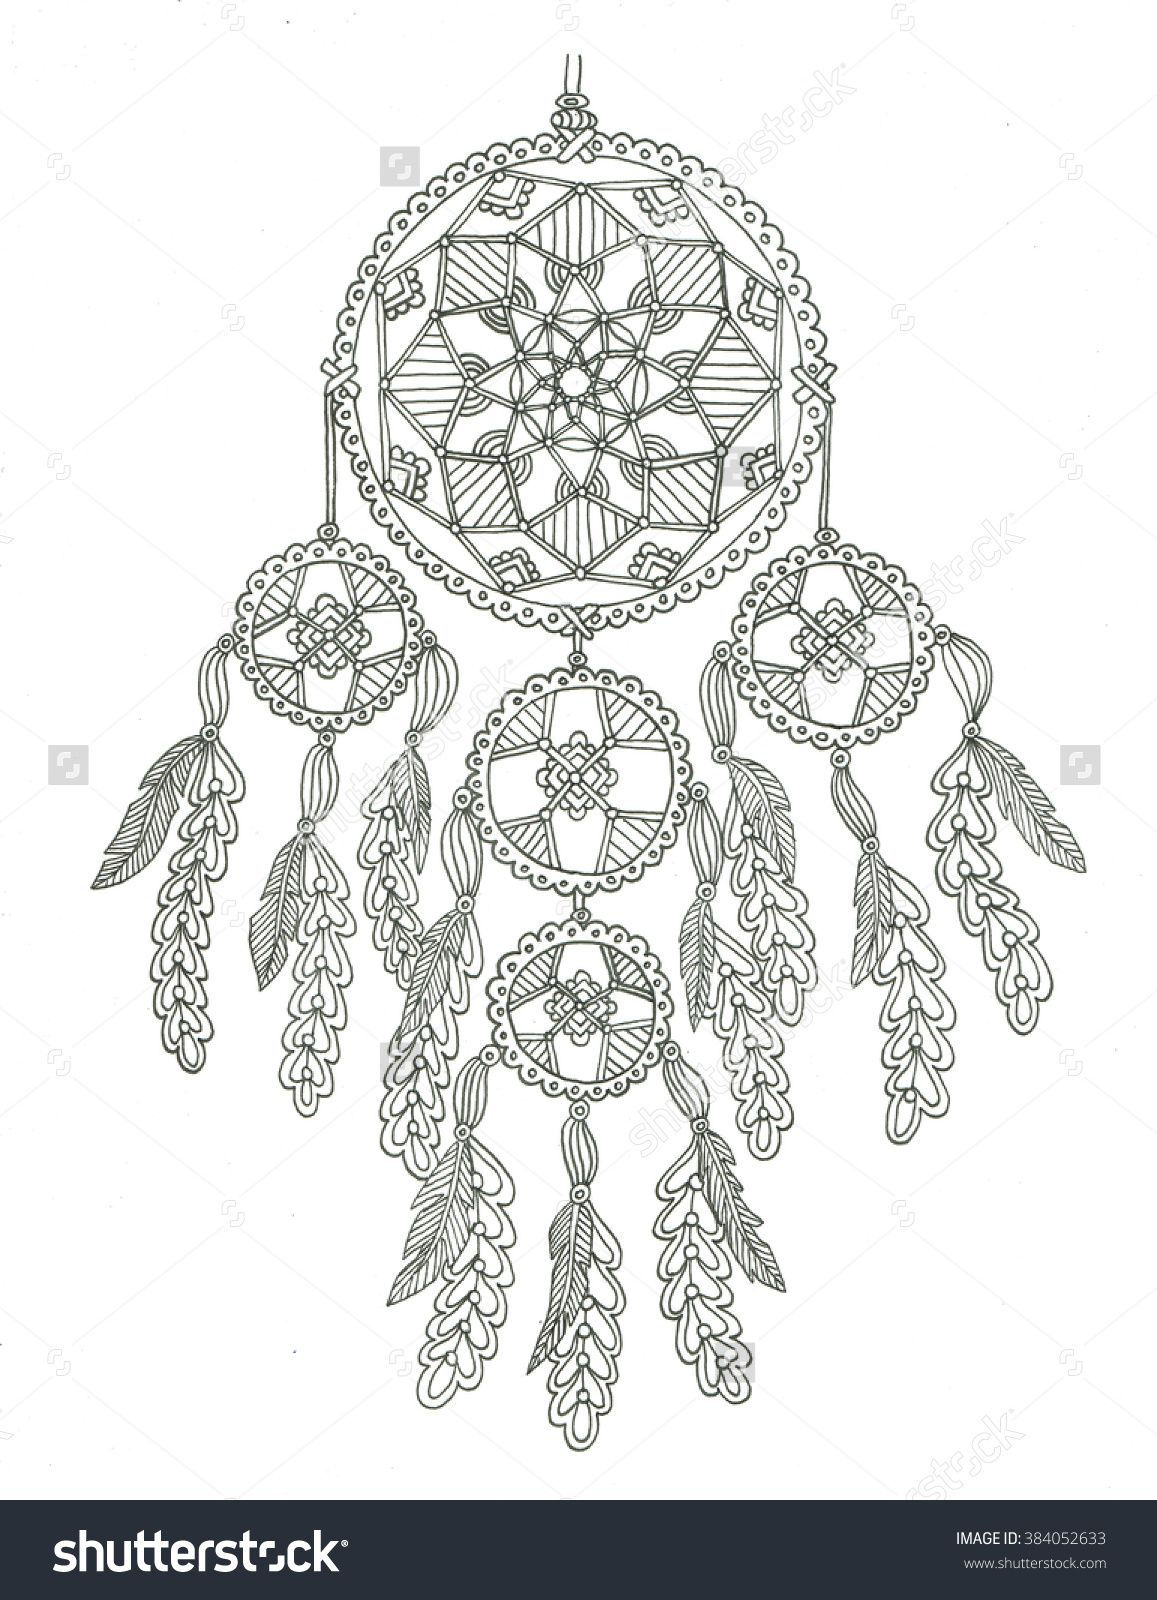 Coloring Pages Dream Catchers  Printable 5p - To print for your project